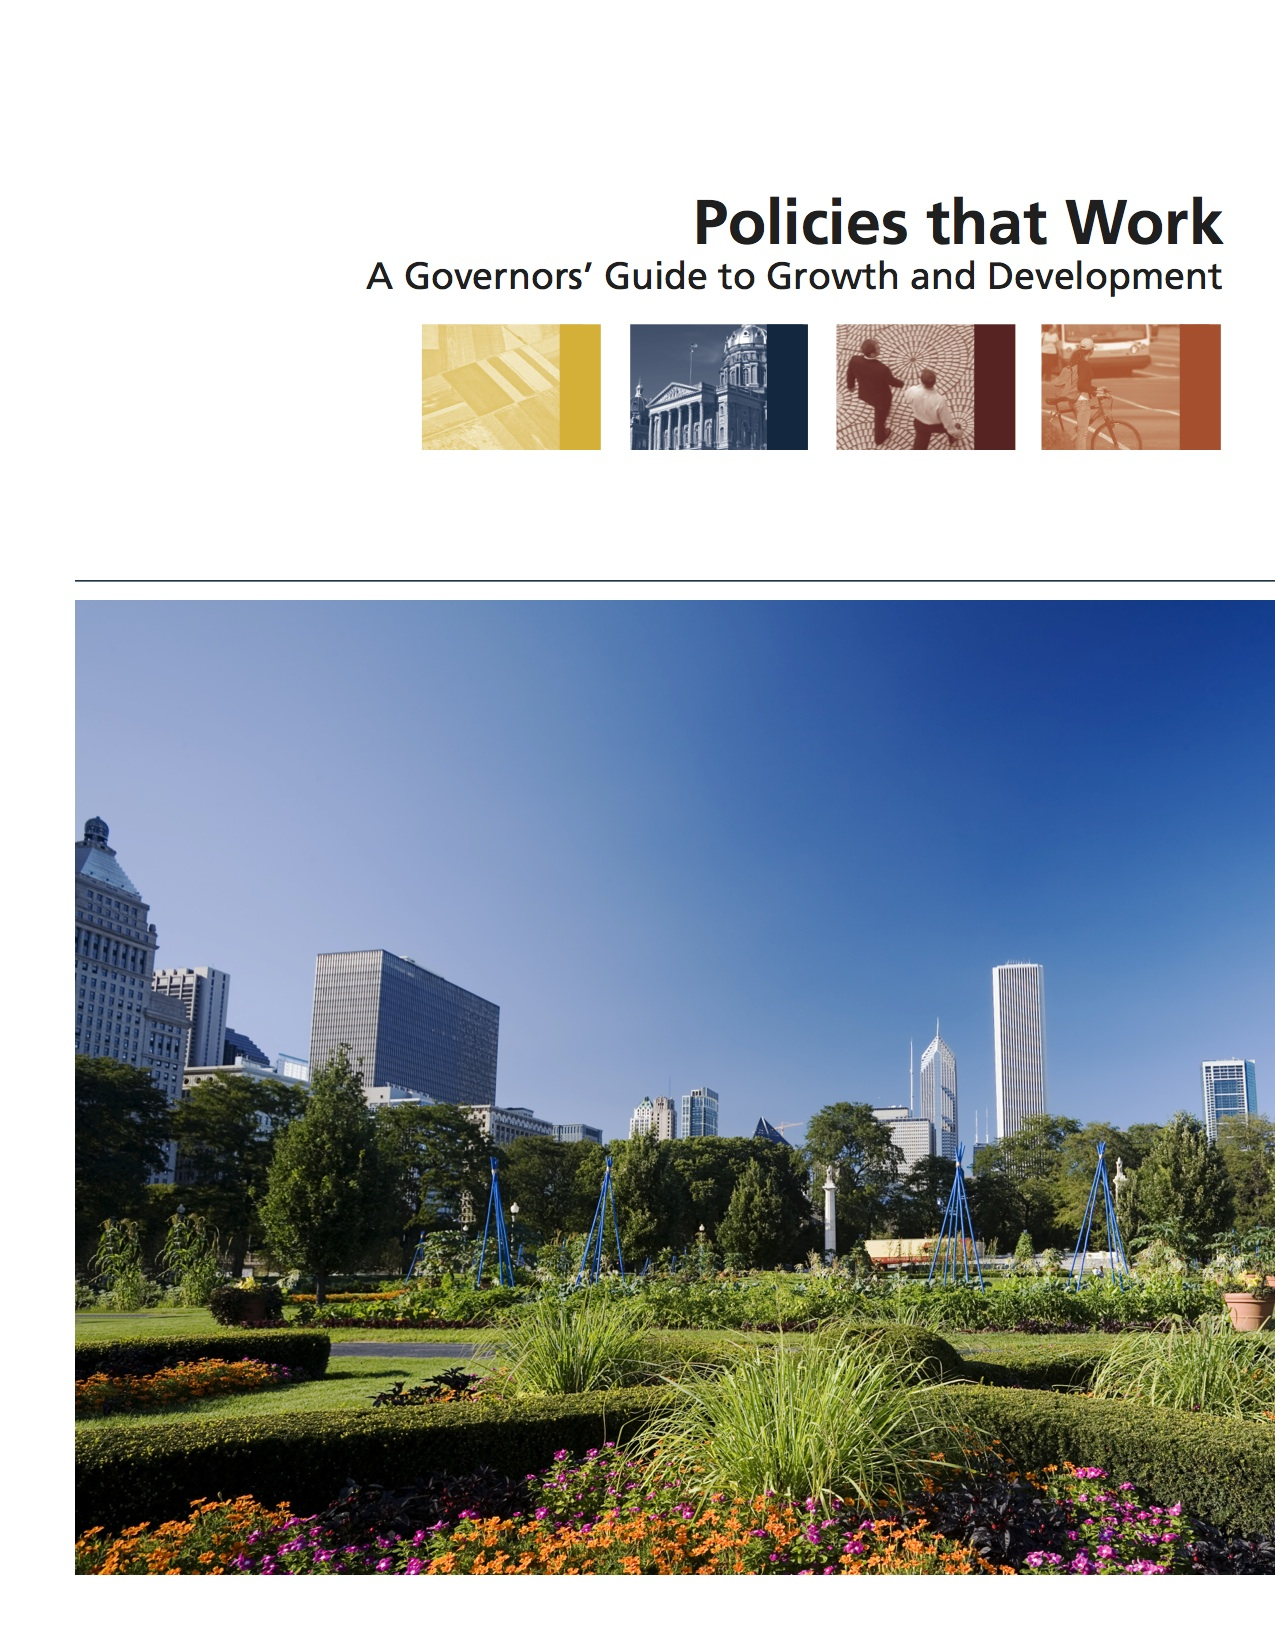 Policies that Work: A Governors' Guide to Growth and Development